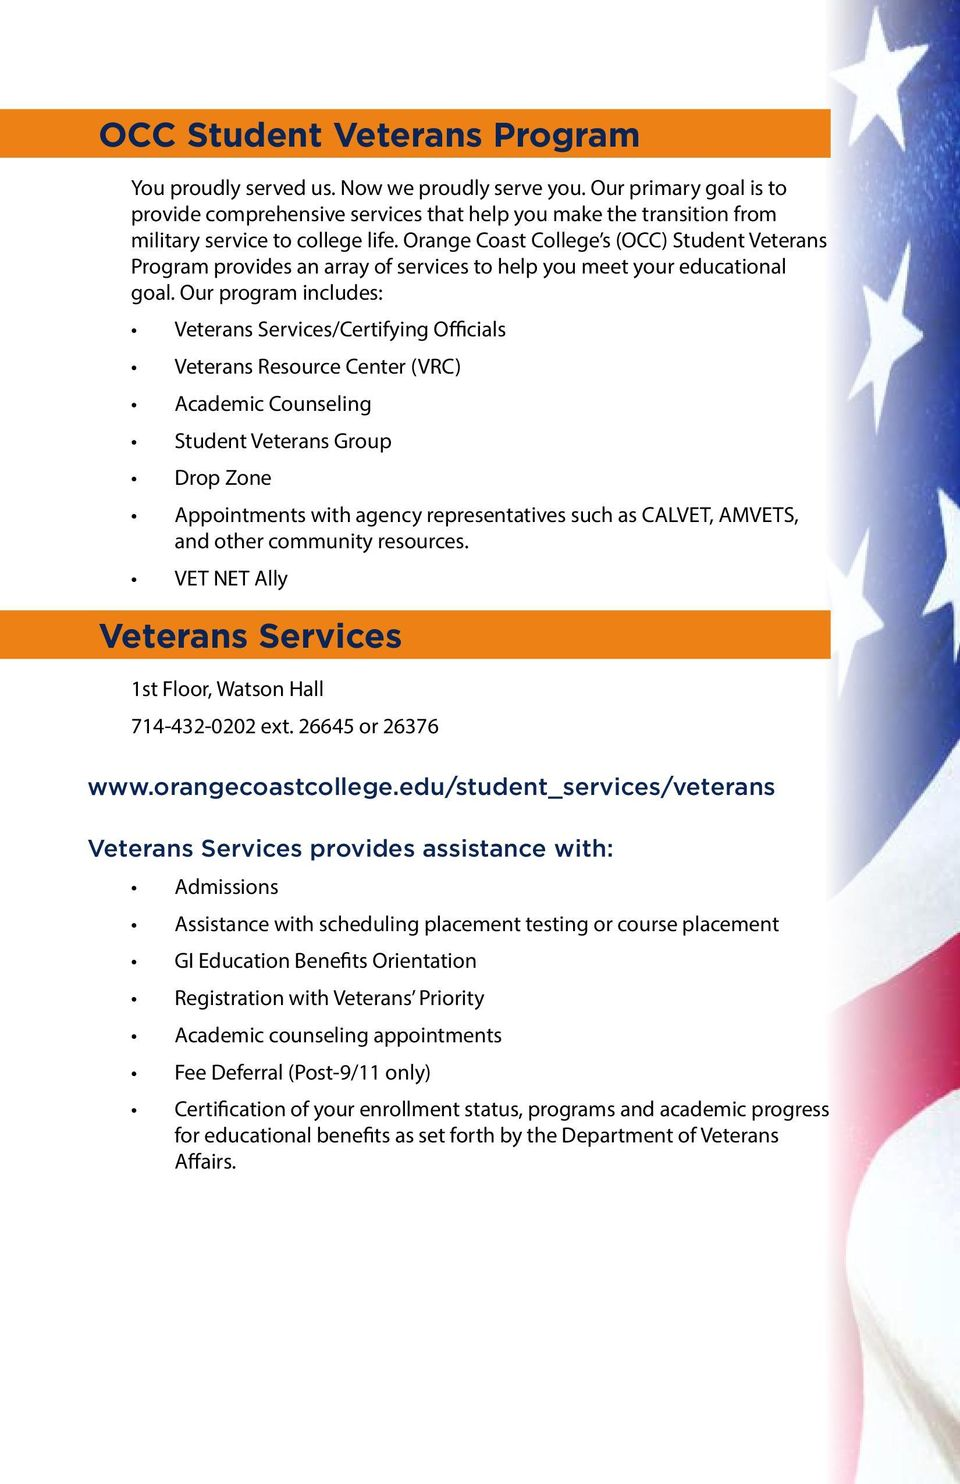 Orange Coast College s (OCC) Student Veterans Program provides an array of services to help you meet your educational goal.